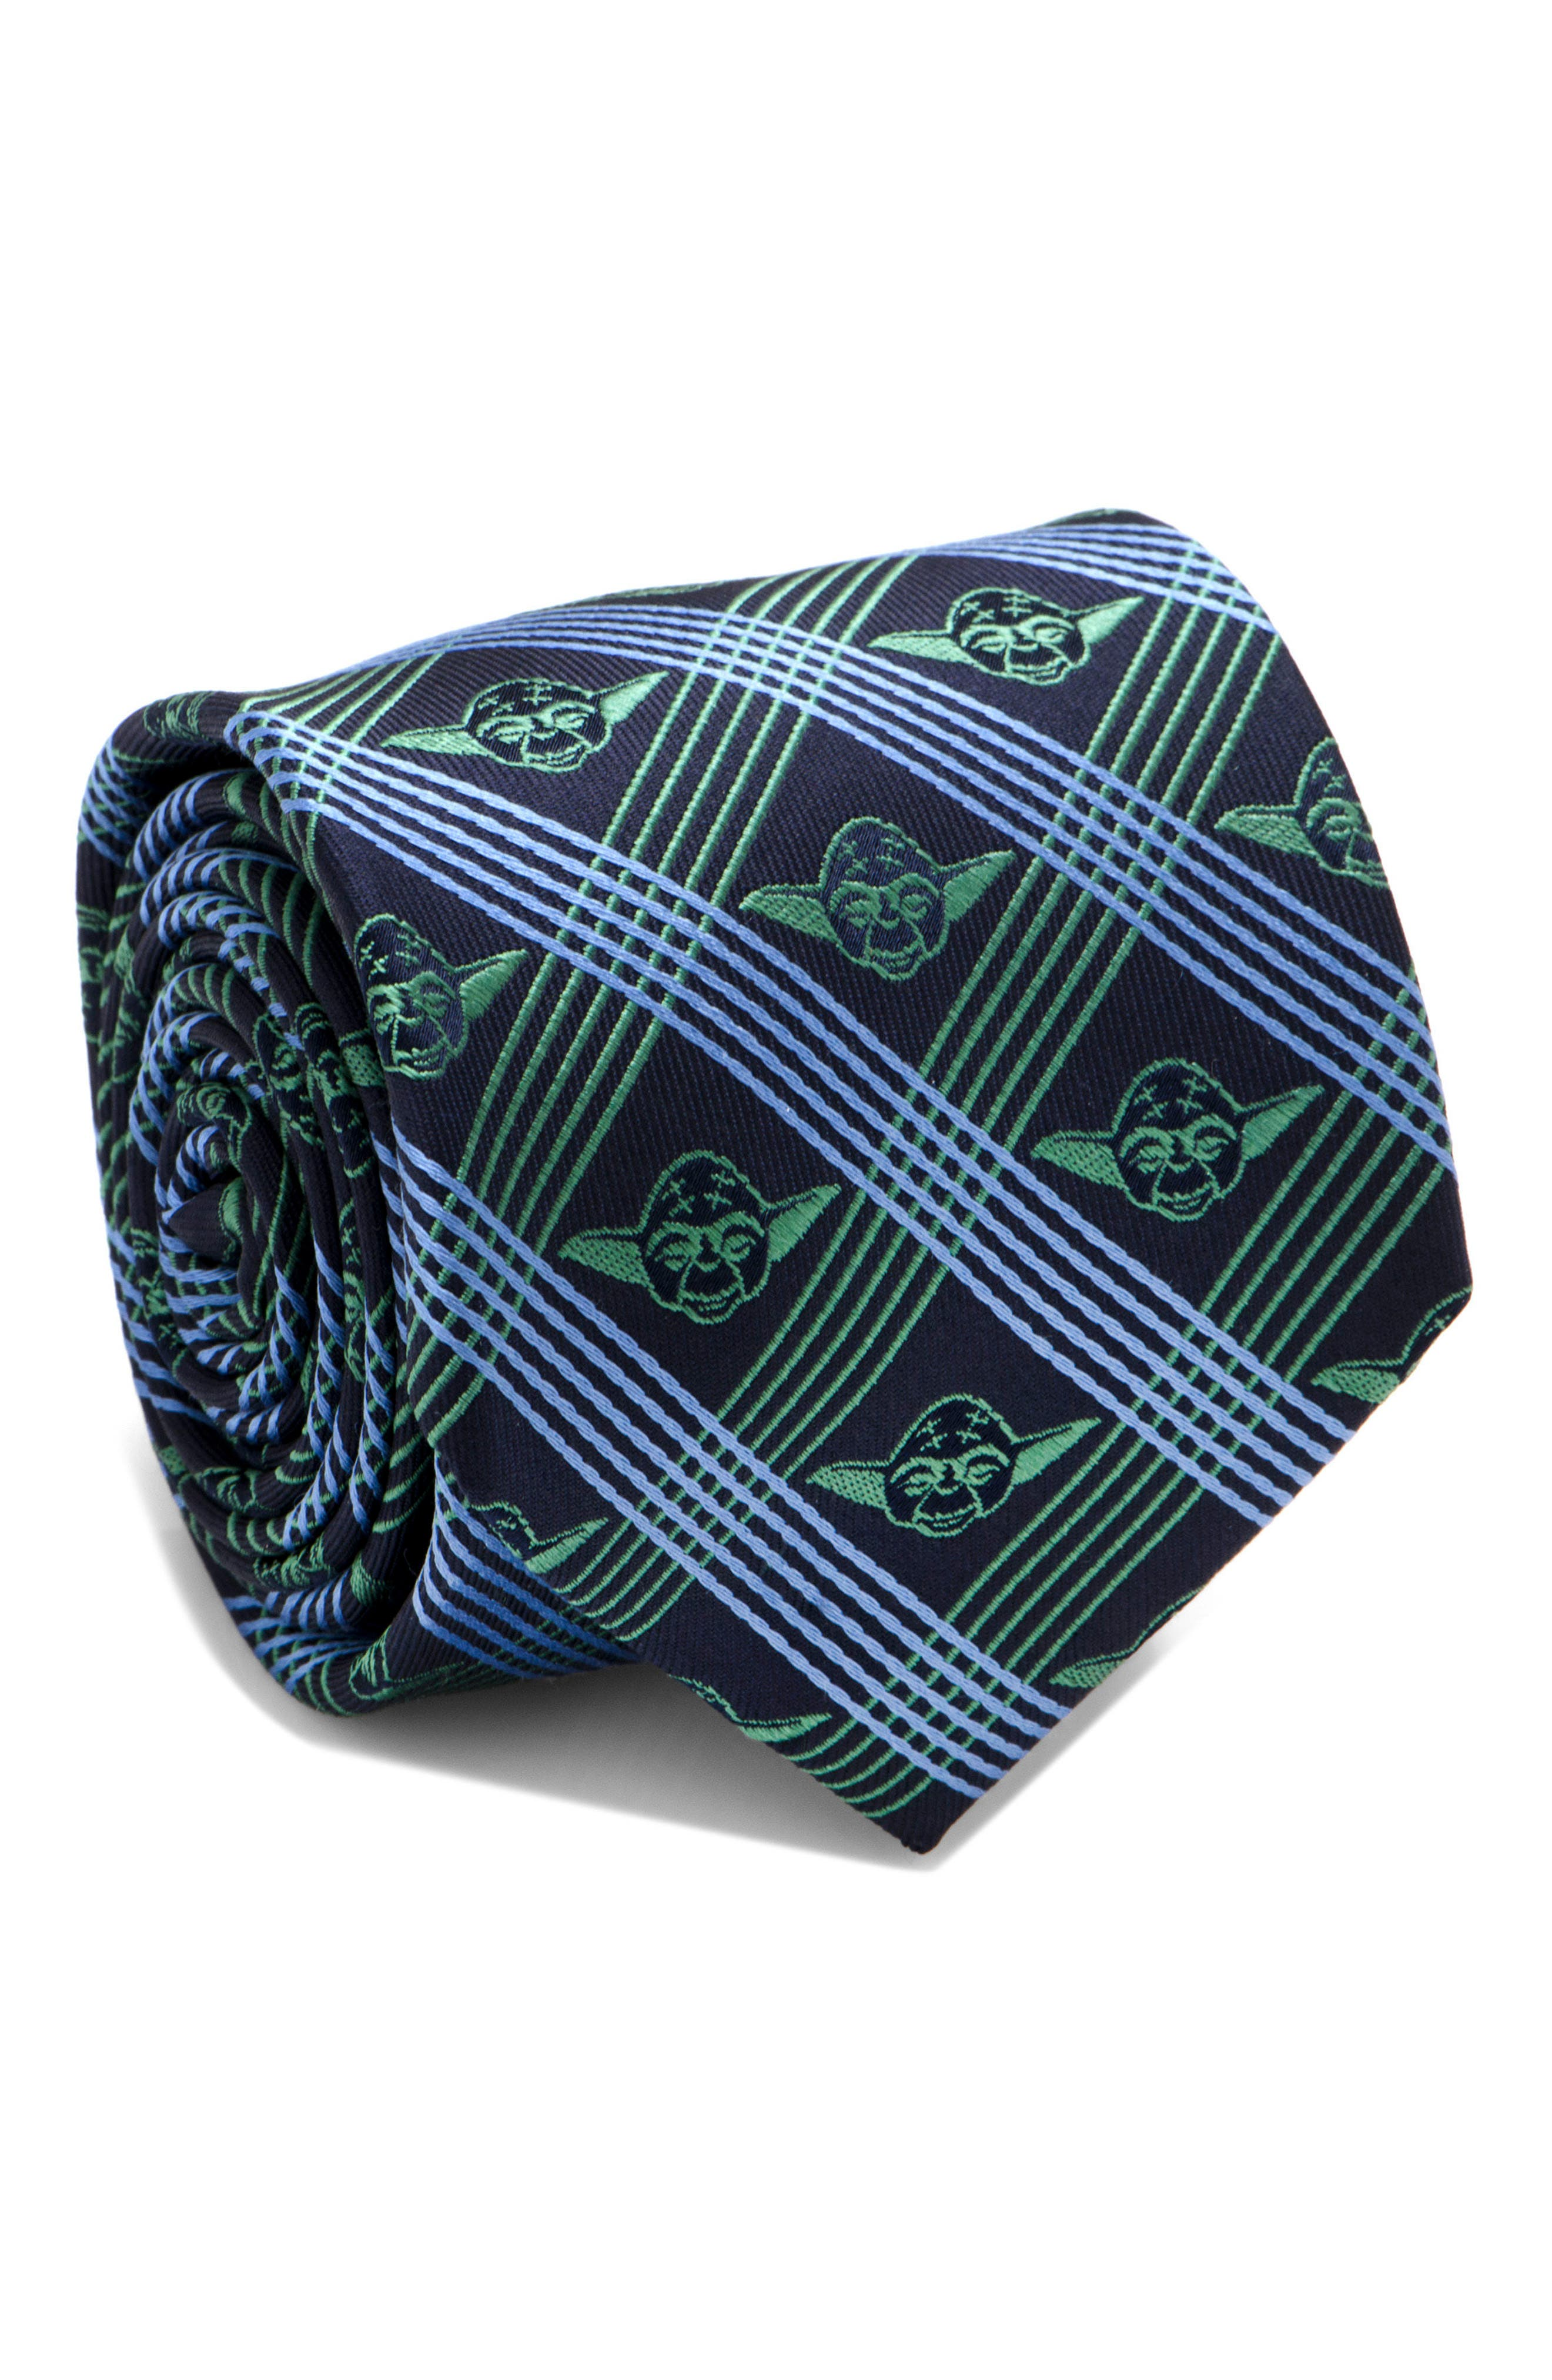 Yoda Grid Silk Tie,                             Main thumbnail 1, color,                             Navy